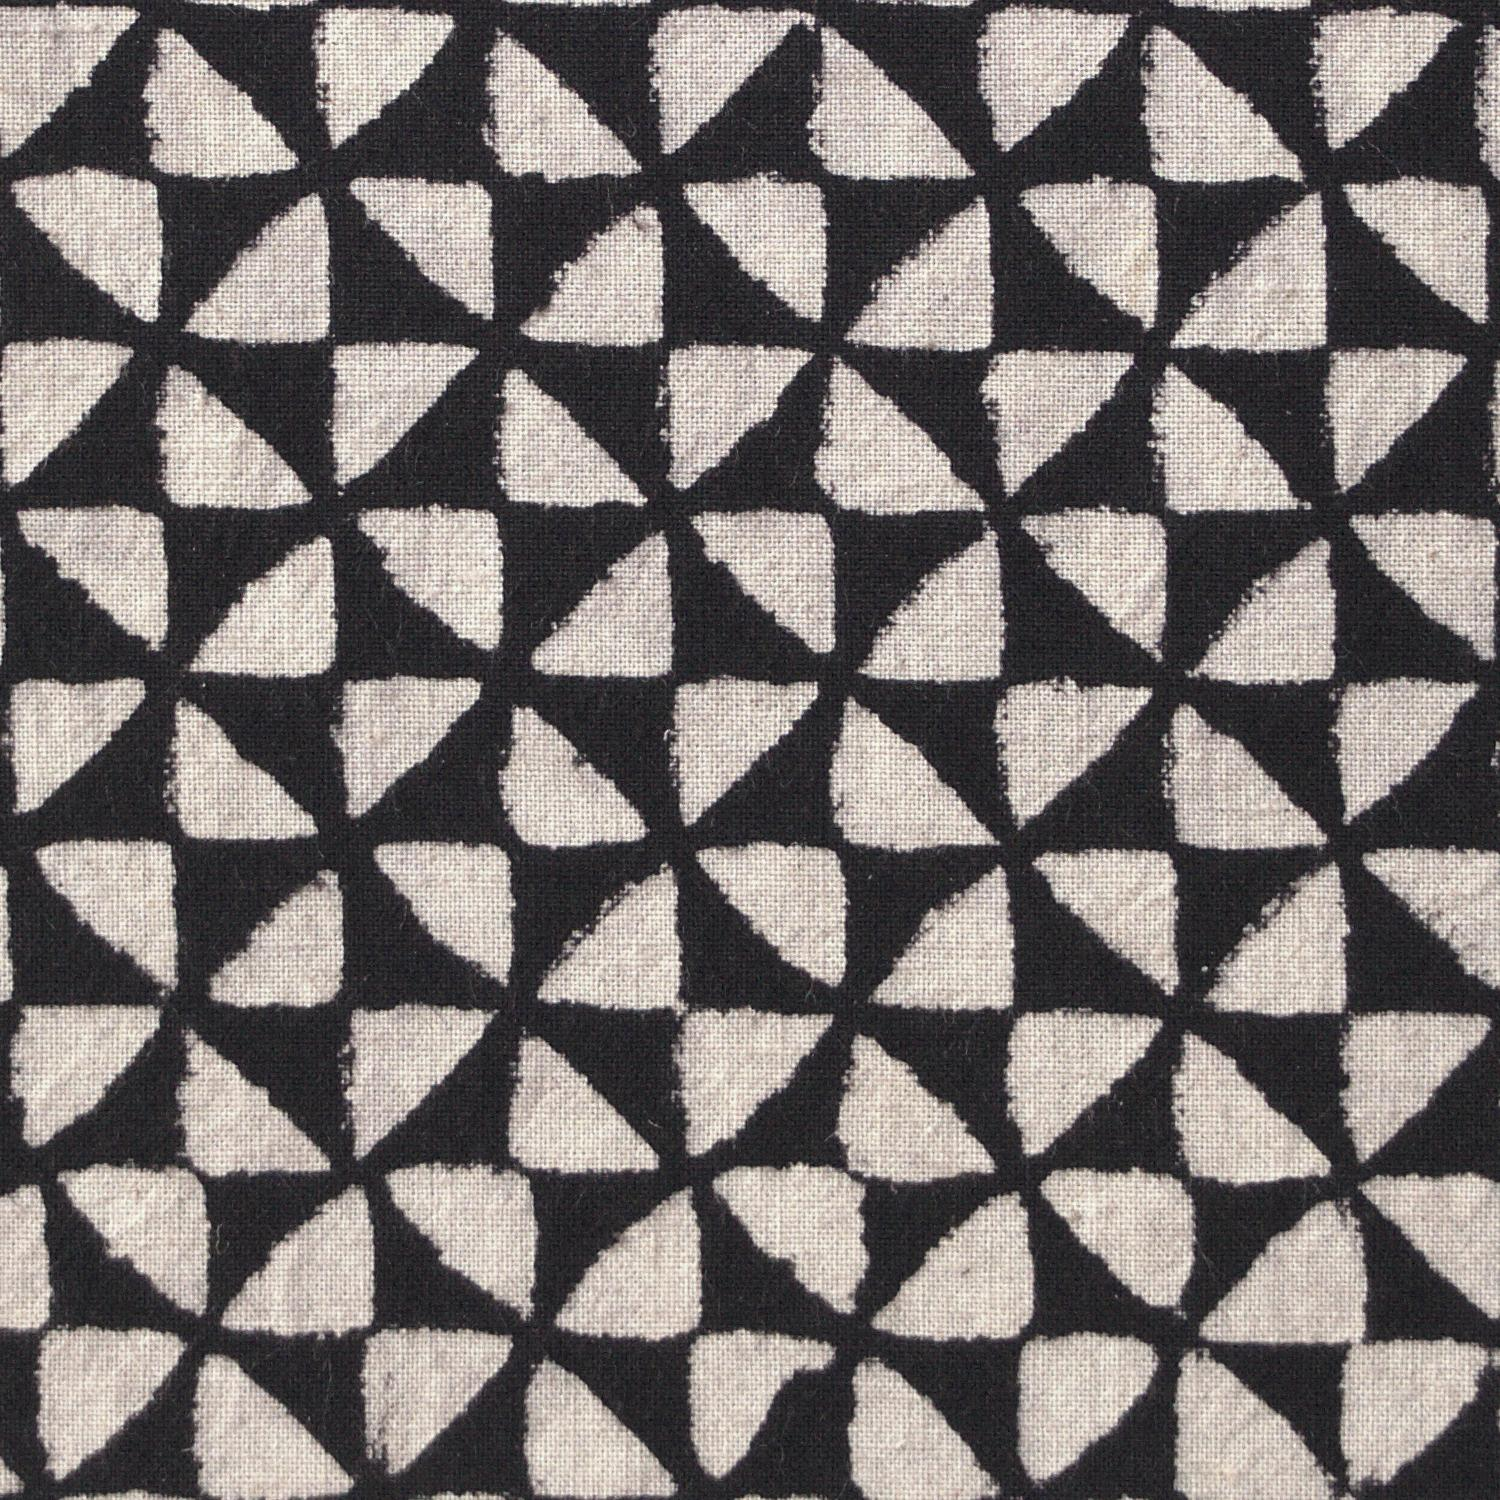 4 - IBR26 - 100% Block-Printed Cotton Fabric From India- Ajrak - Black White Resist Hourglass Print - Close Up